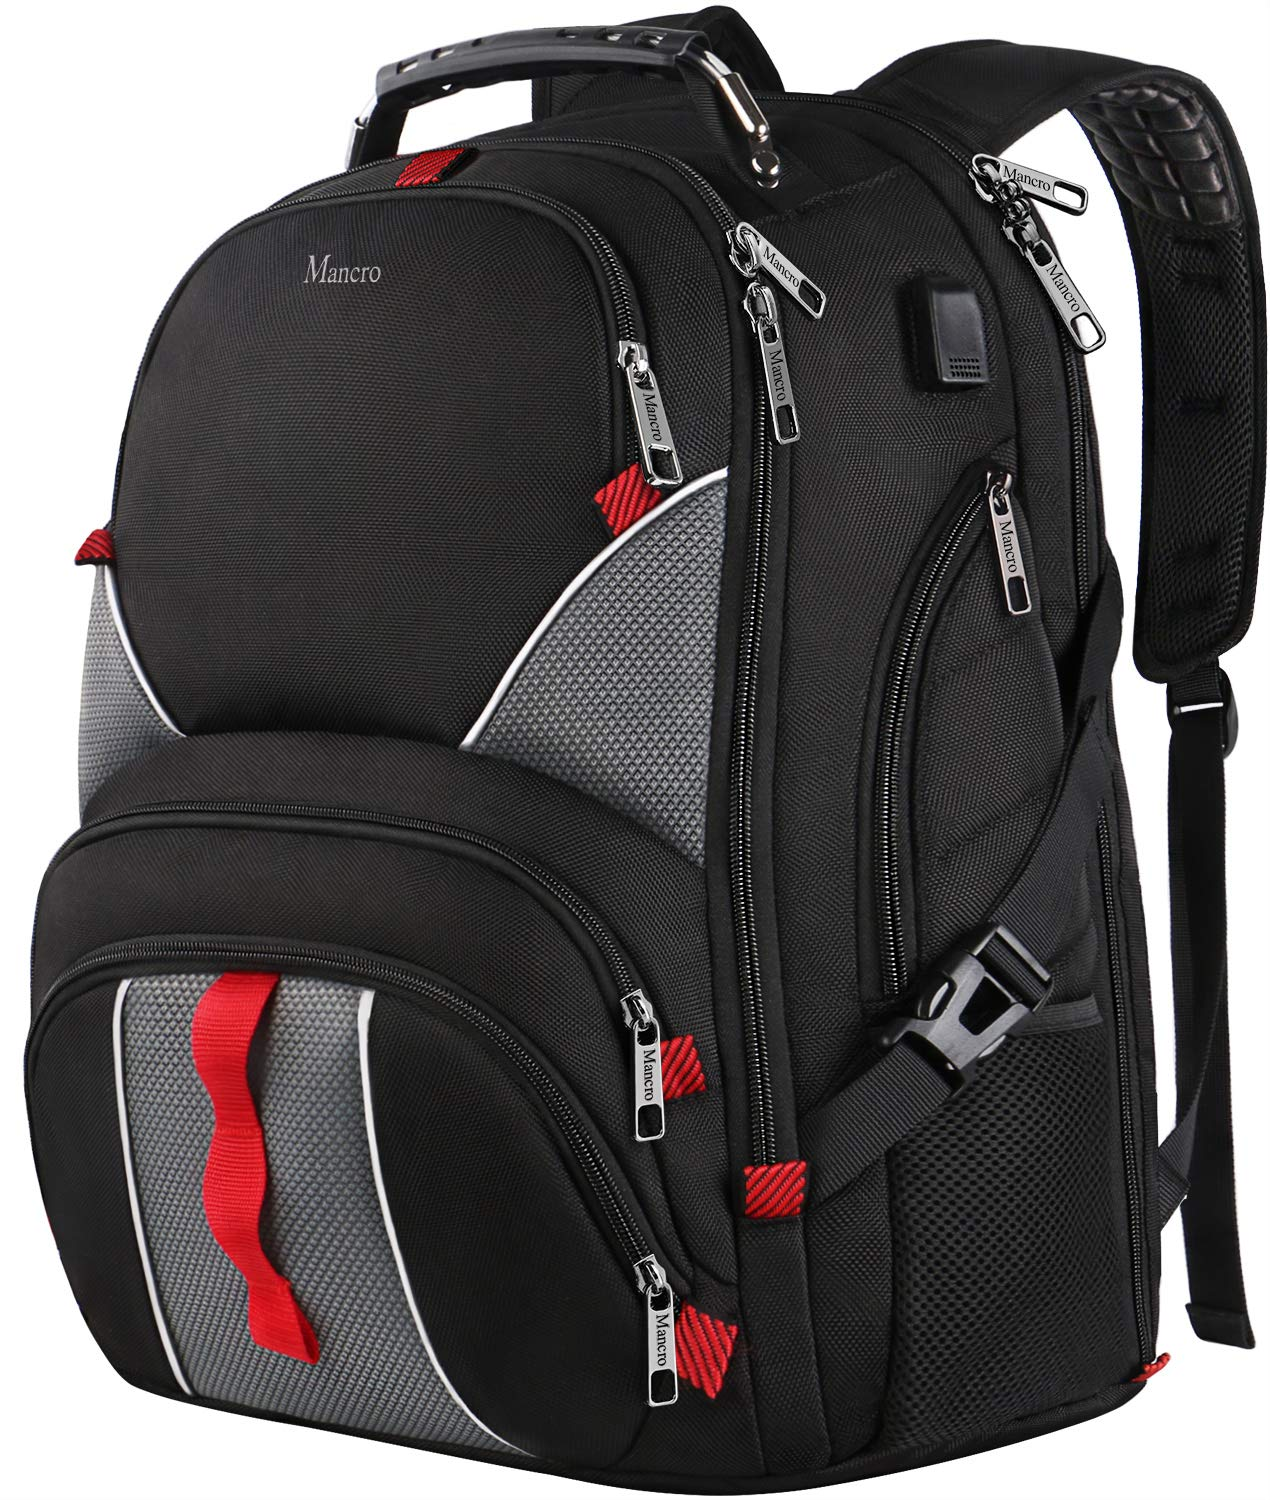 e90ad9dea 17 Inch Laptop Backpack,Extra Large Durable TSA Friendly Computer Backpack  for Men Women,Waterproof School Book Bag with USB Charging Port,Luggage  Sleeve ...